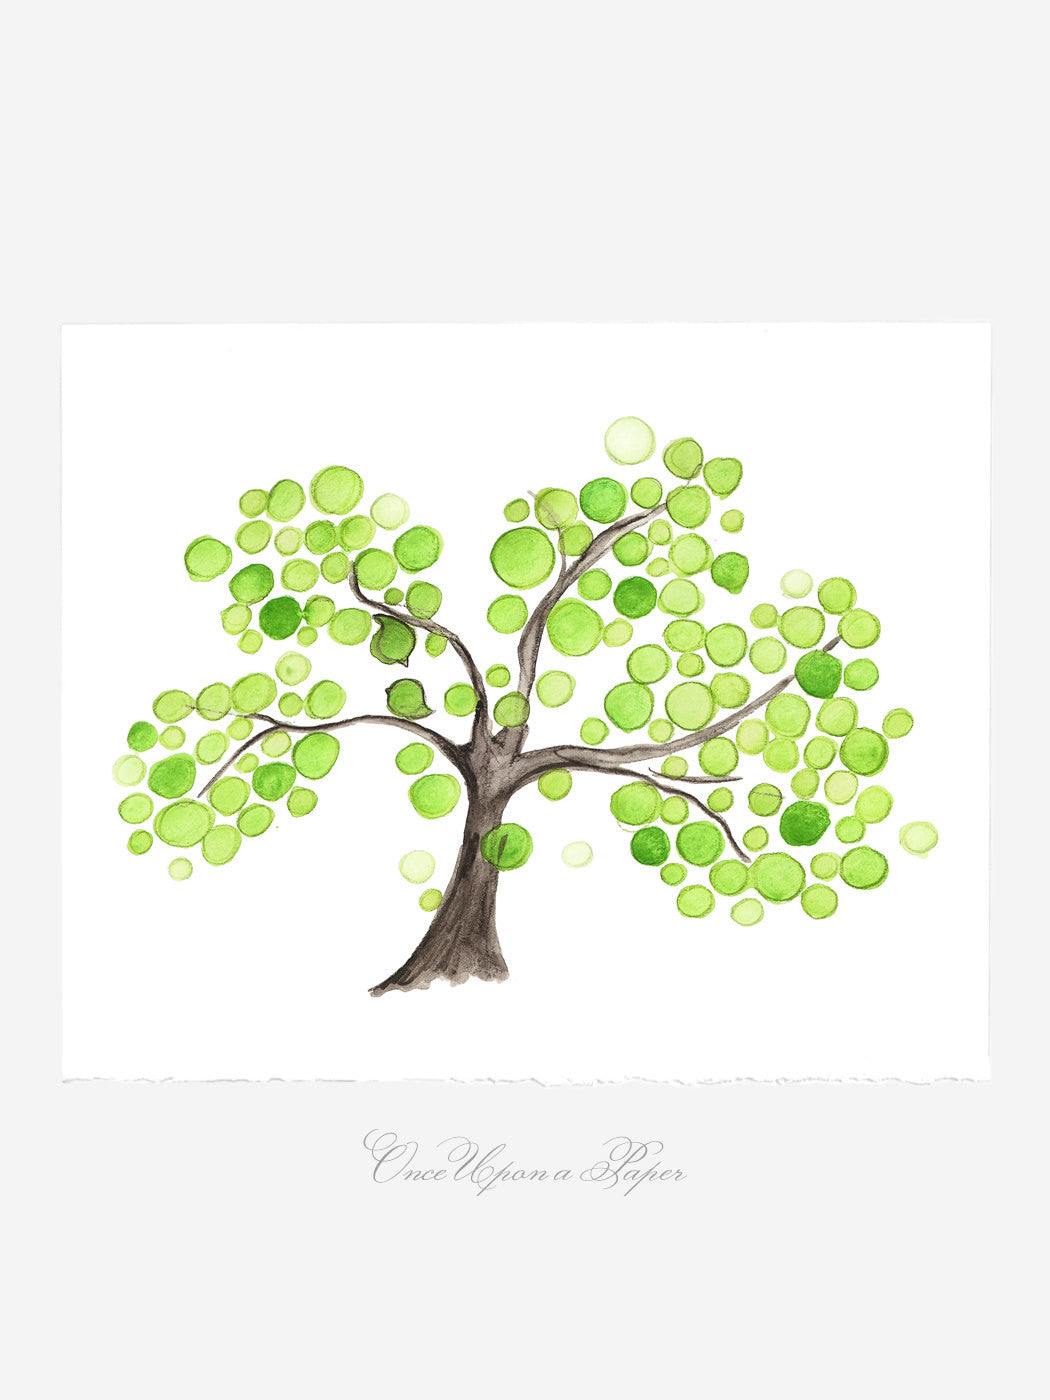 Wedding Gift Anniversary Gift - Brotherhood Tree - Giclee Art Print Reproduction of Watercolor Painting -Trees of Life Collection